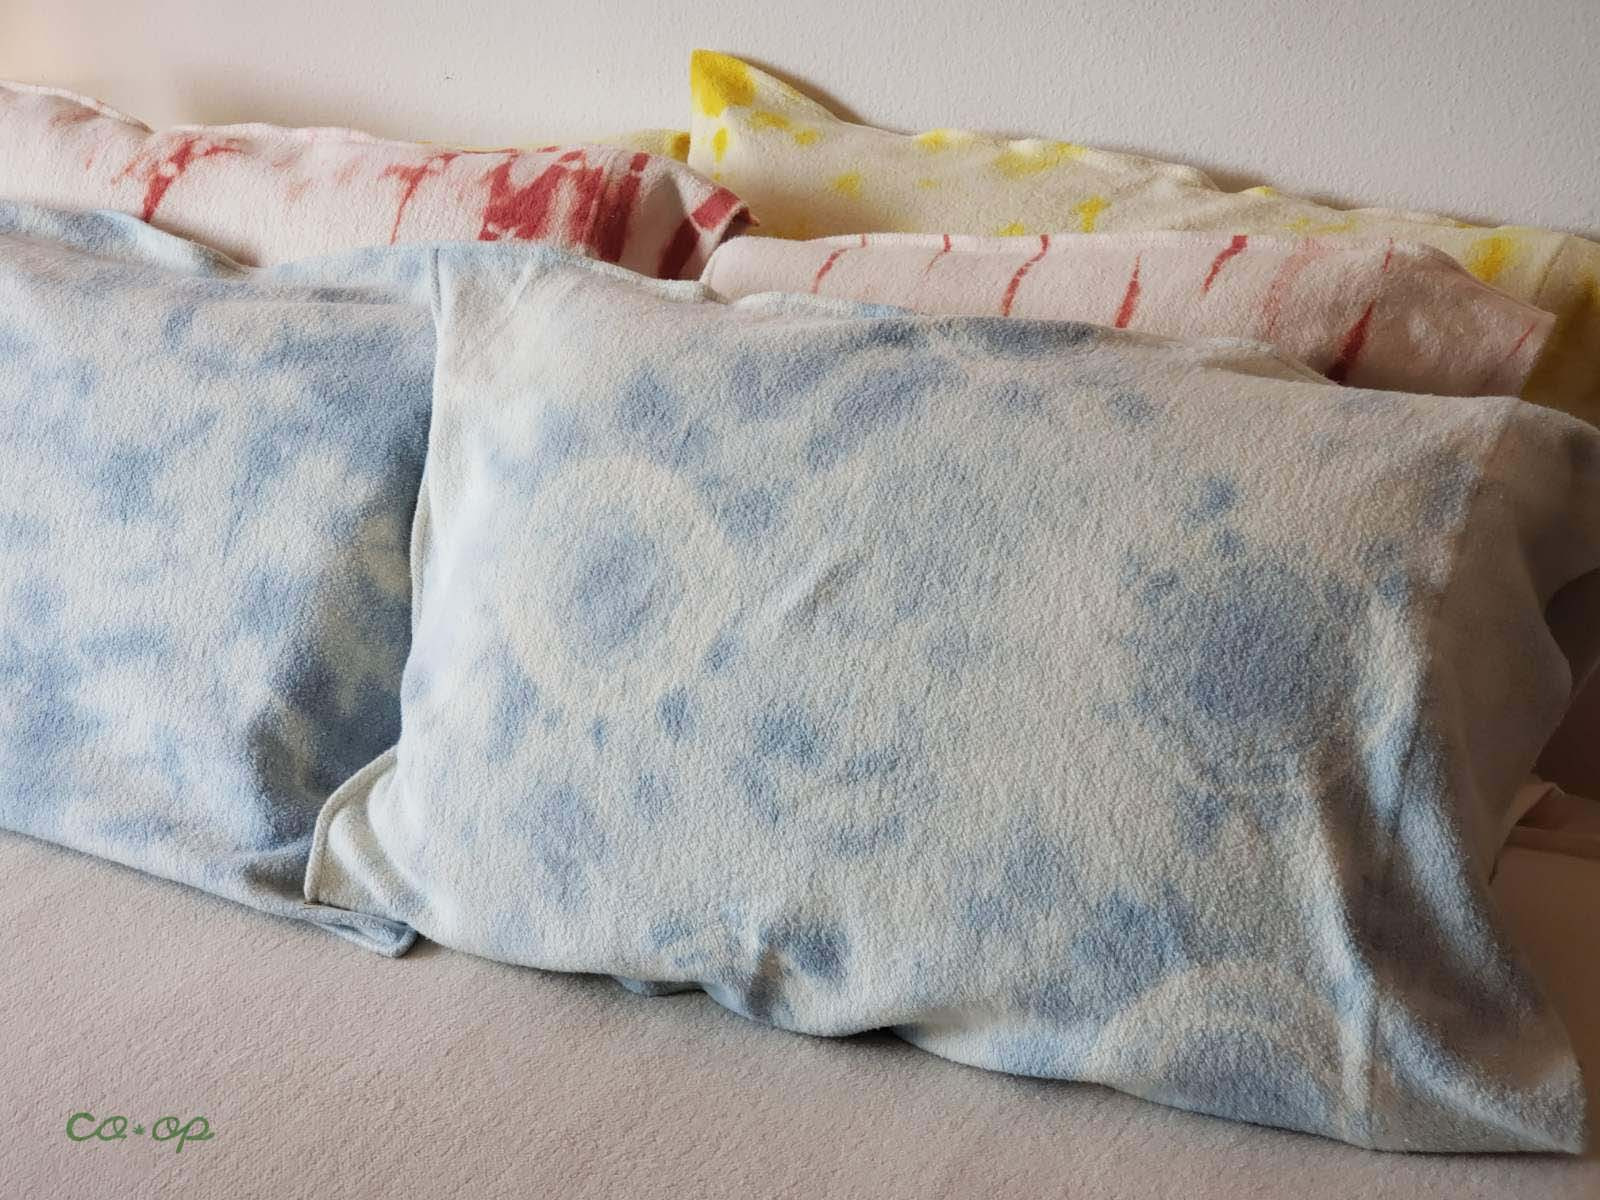 Coop Hemp Cloud Pillow Cases